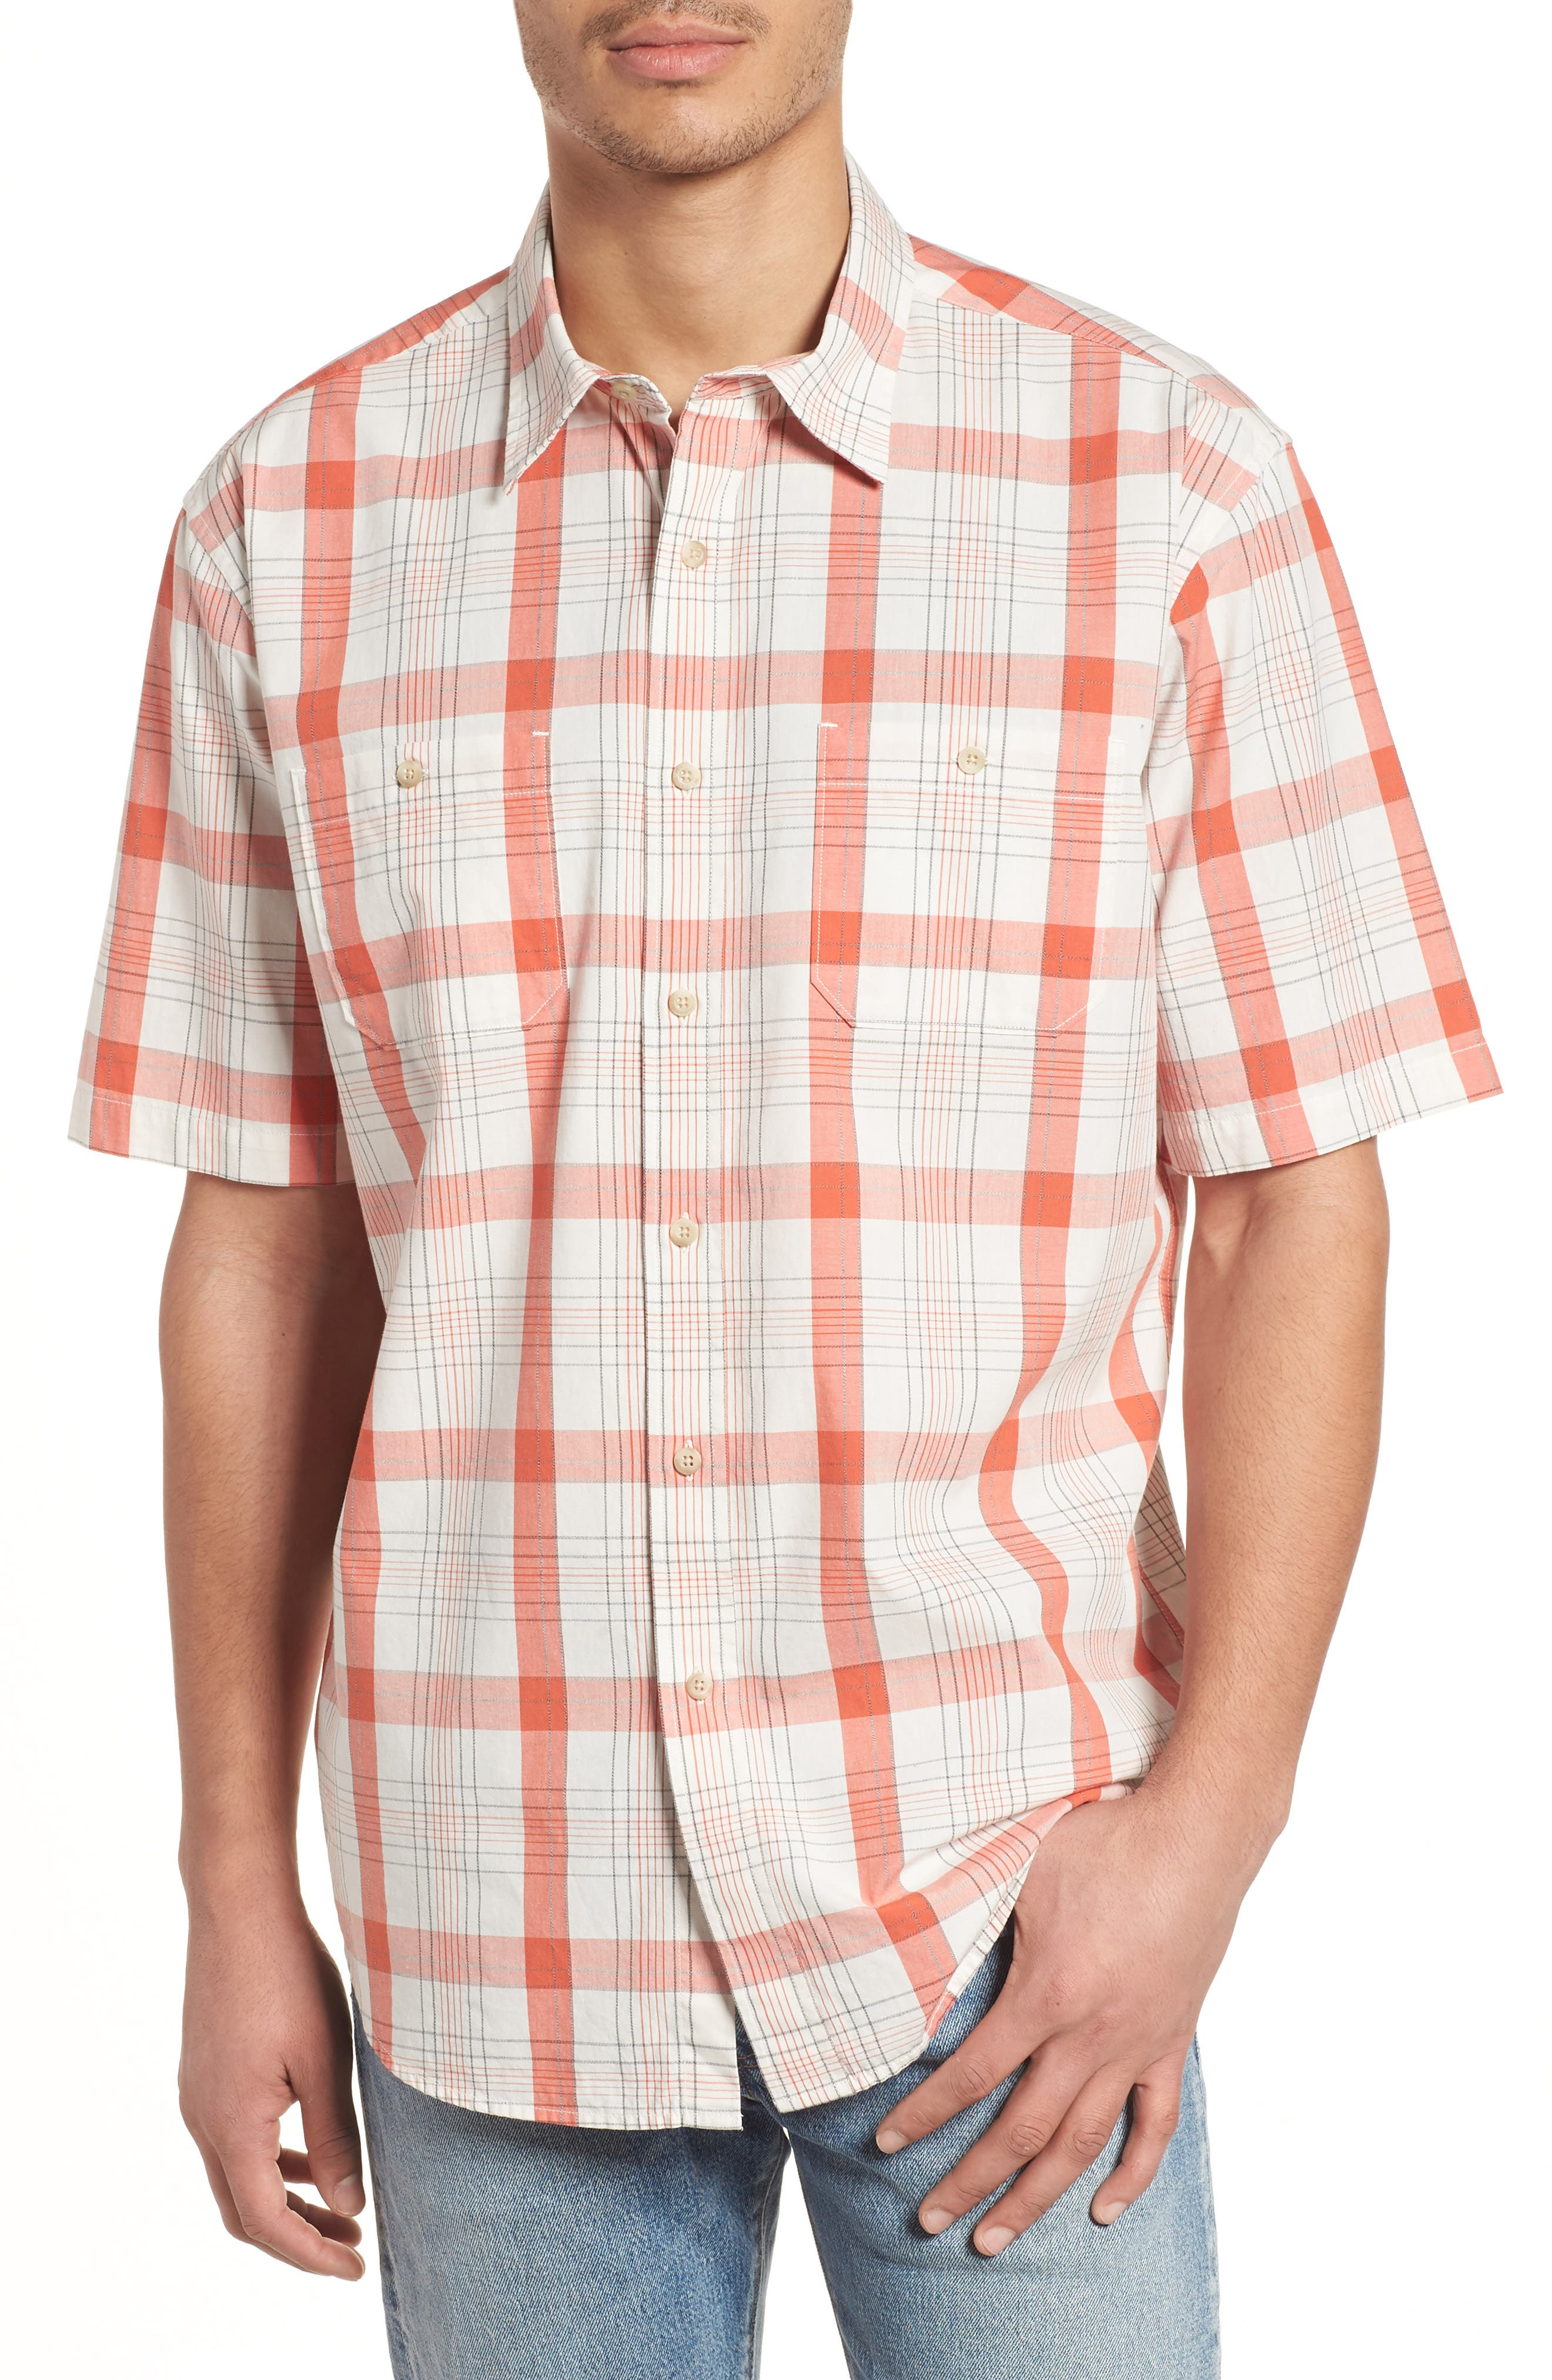 Clear Lake Short Sleeve Woven Shirt,                         Main,                         color, Coral Plaid